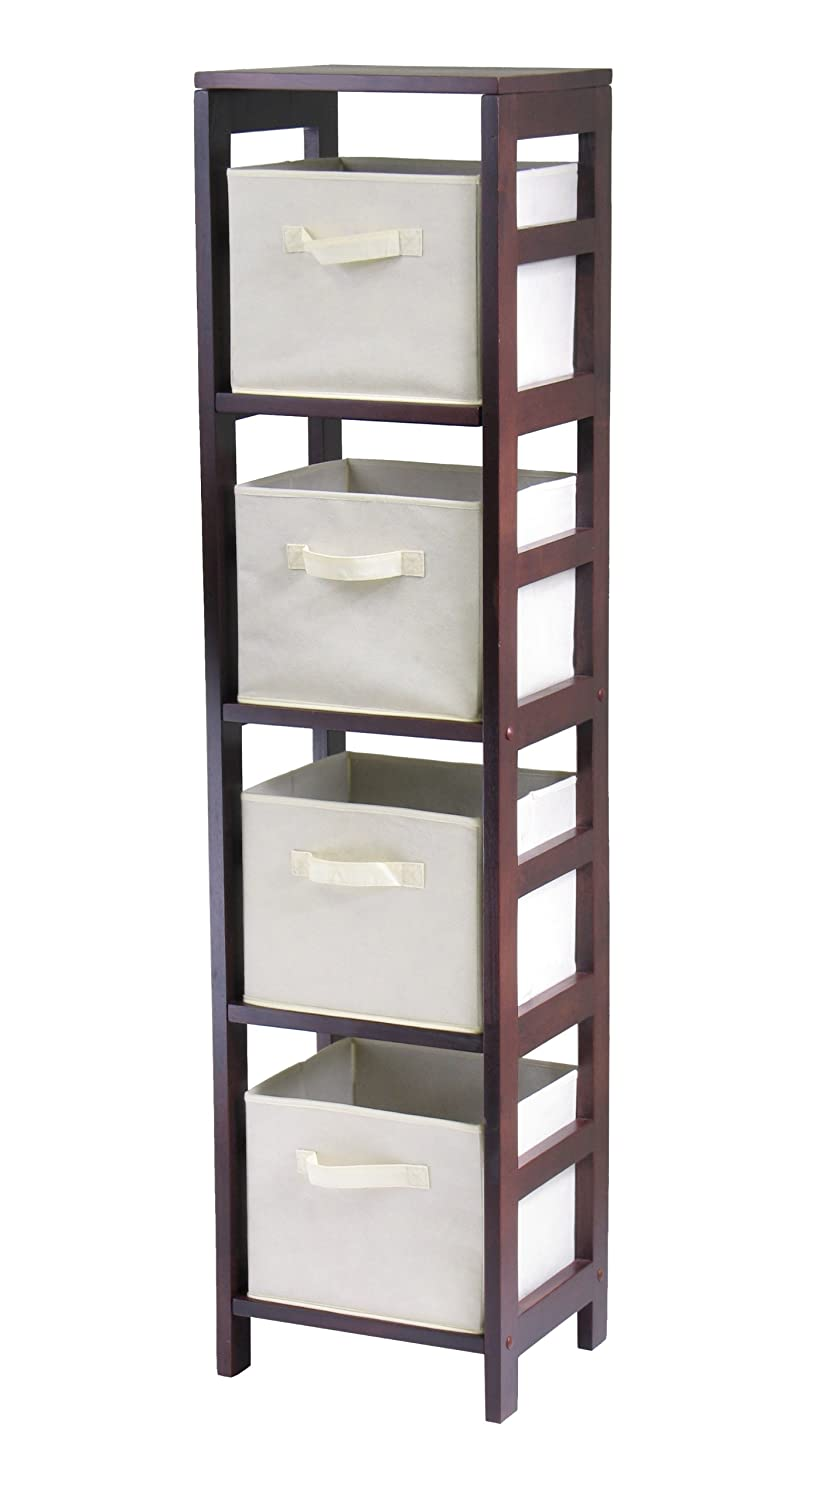 Captivating Amazon.com: Winsome Wood 4 Shelf Narrow Shelving Unit, Espresso: Kitchen U0026  Dining